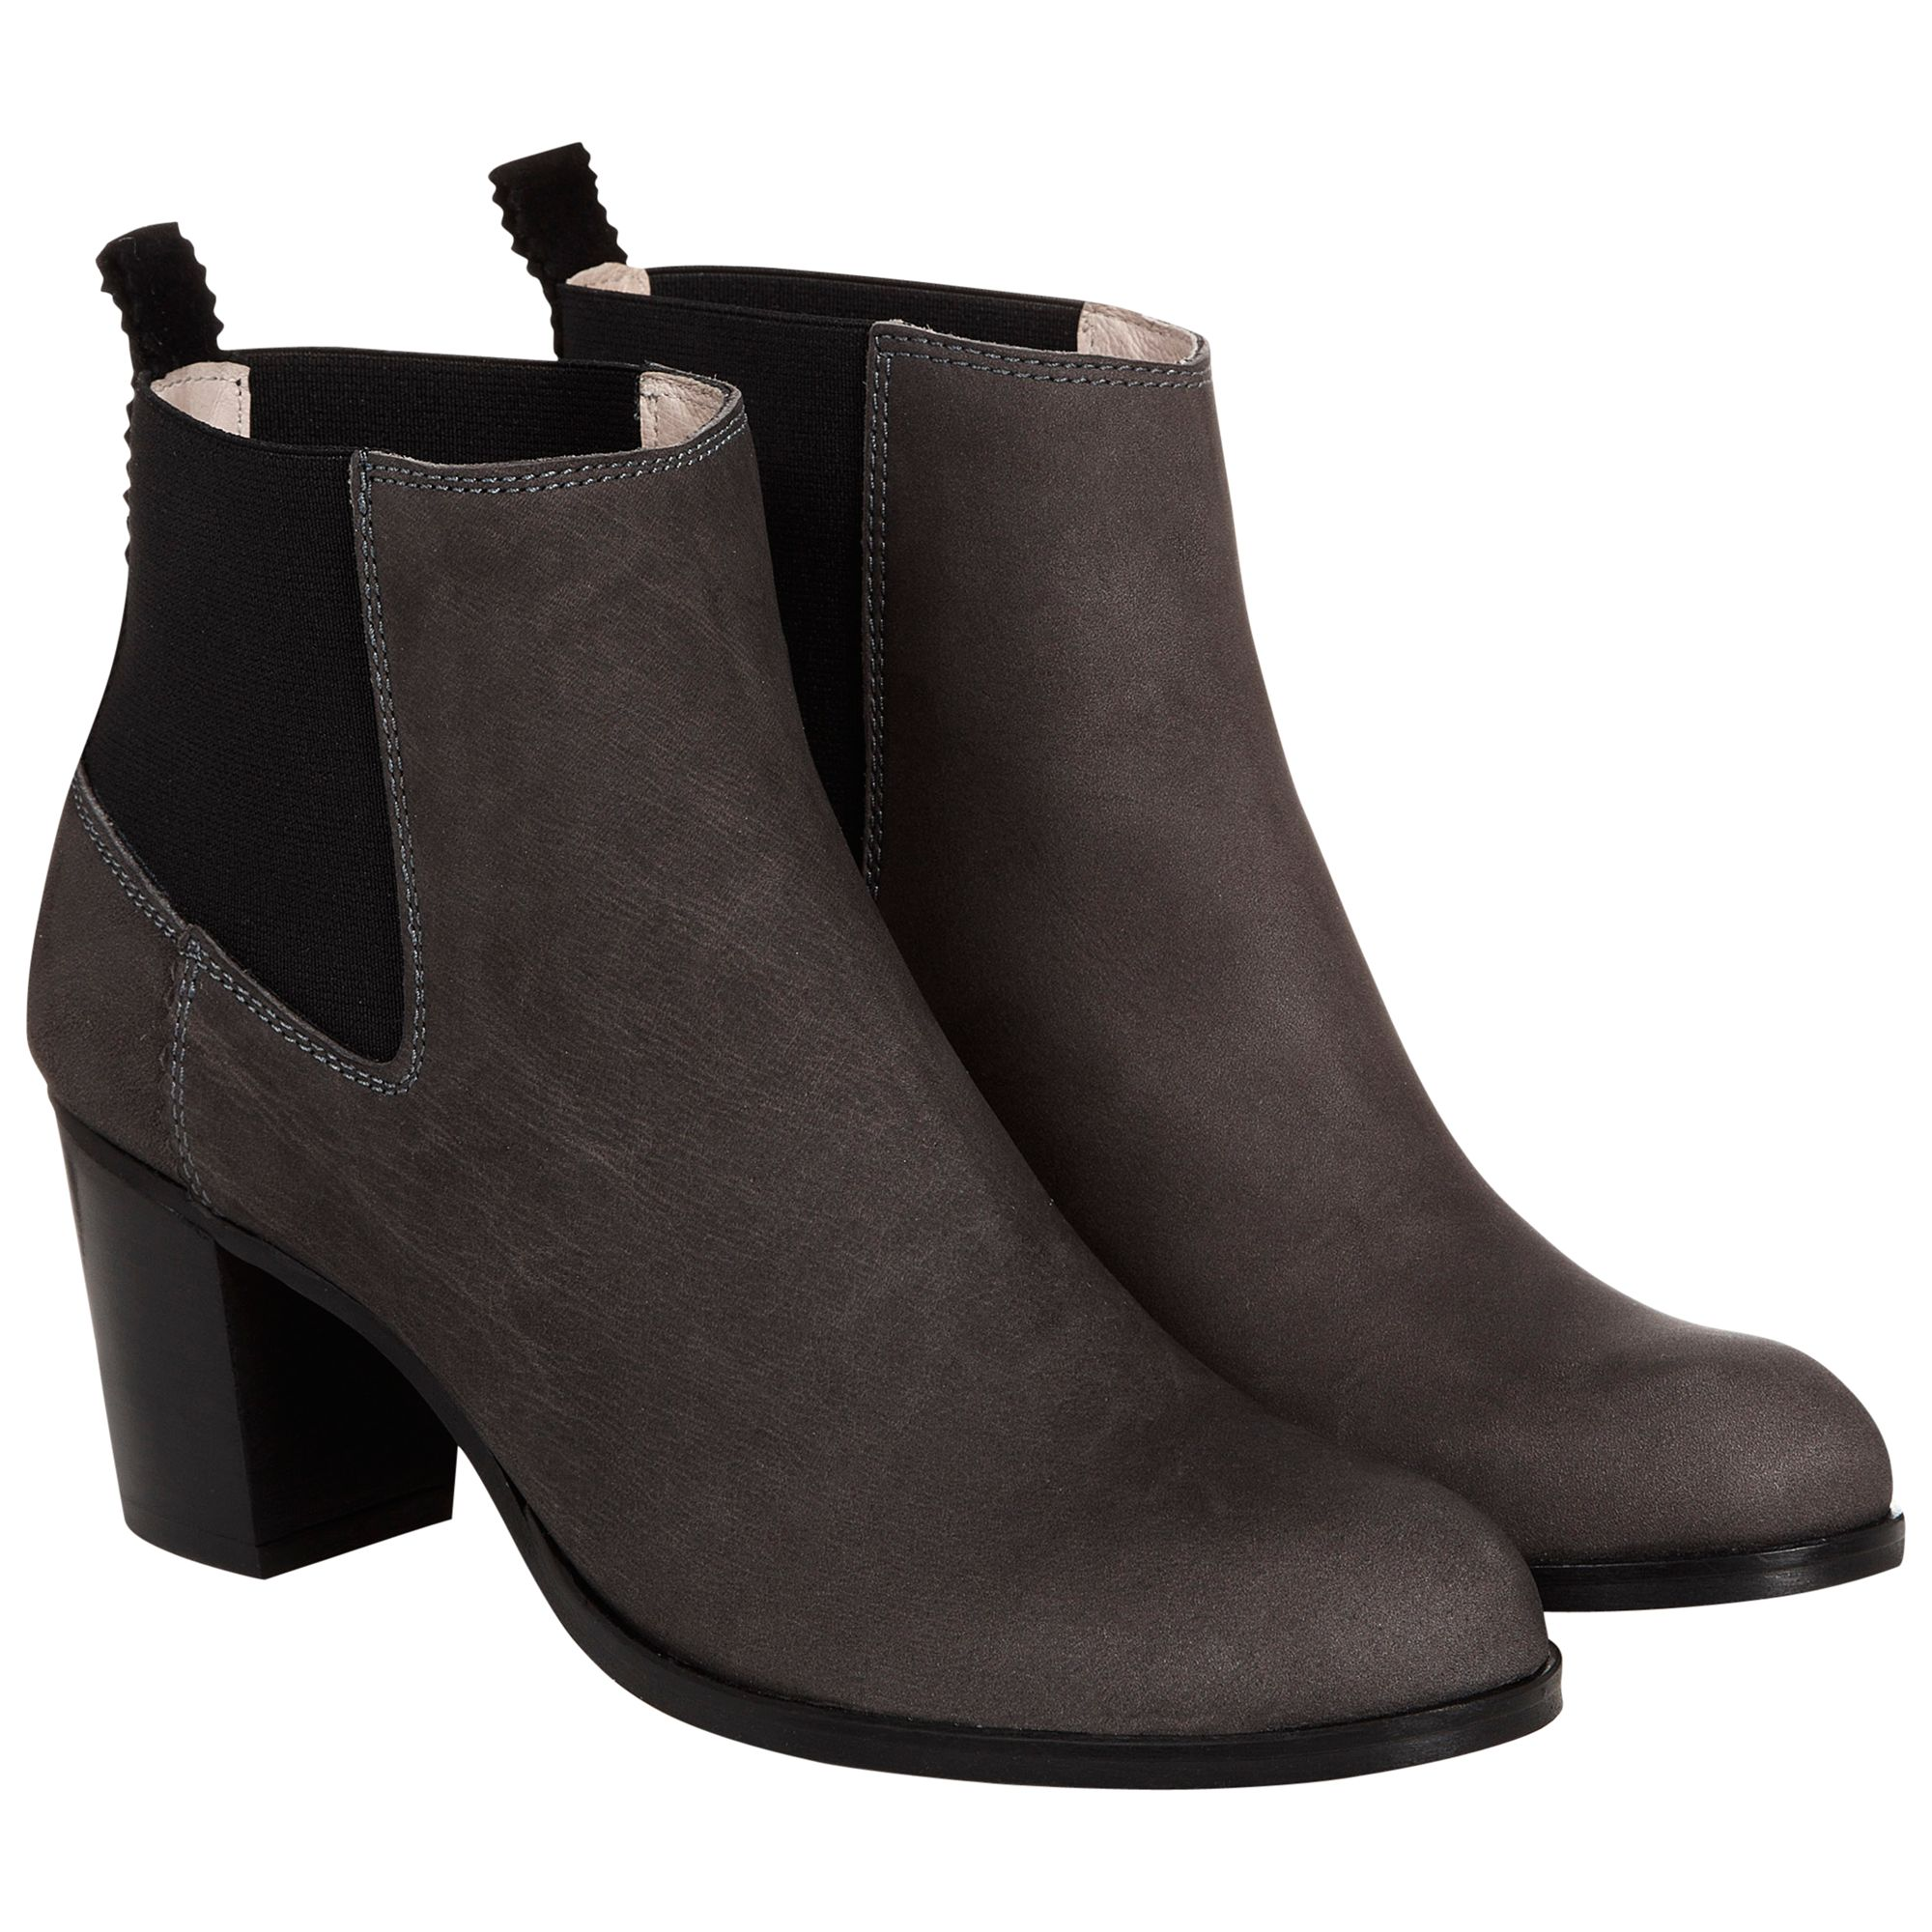 Nw3 By Hobbs Dylan Ankle Stretch Back Nubuck Ankle Boots, Grey